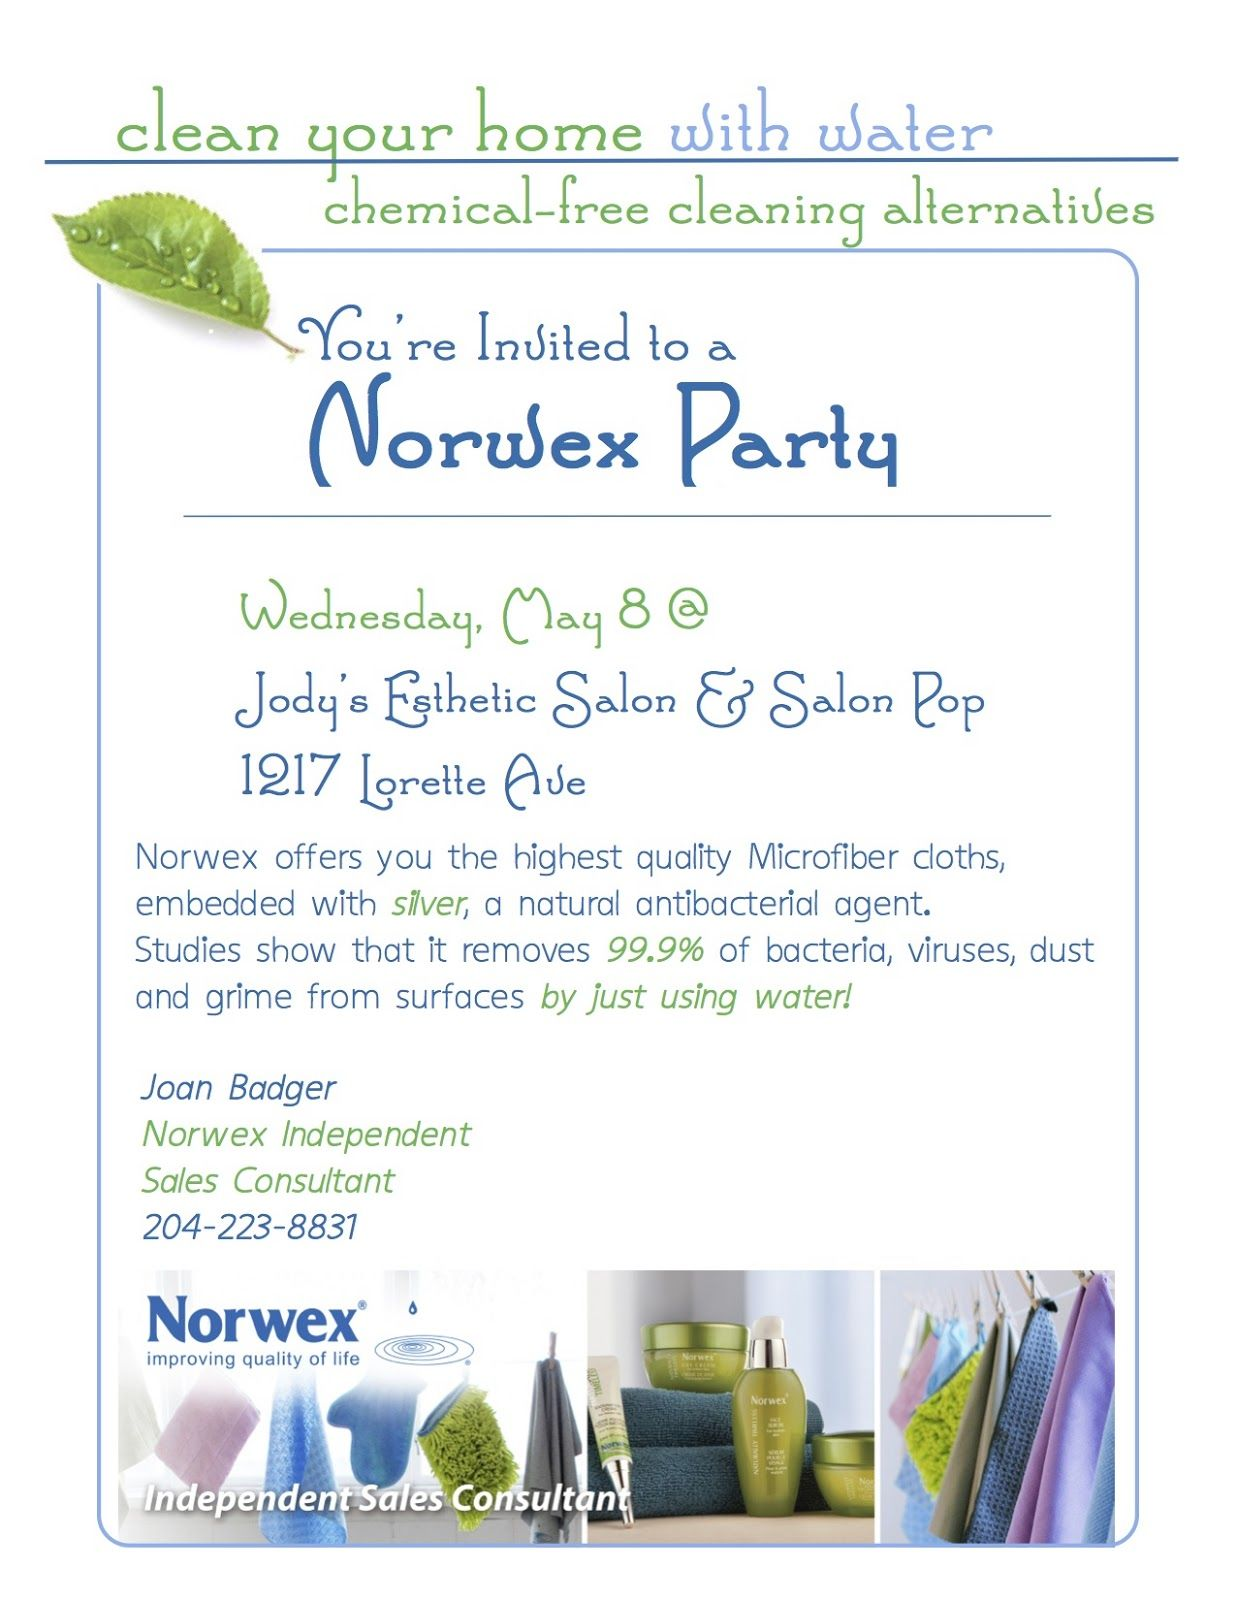 Pin By Diane Laplant On Norwex Pinterest Party Templates And Invitations